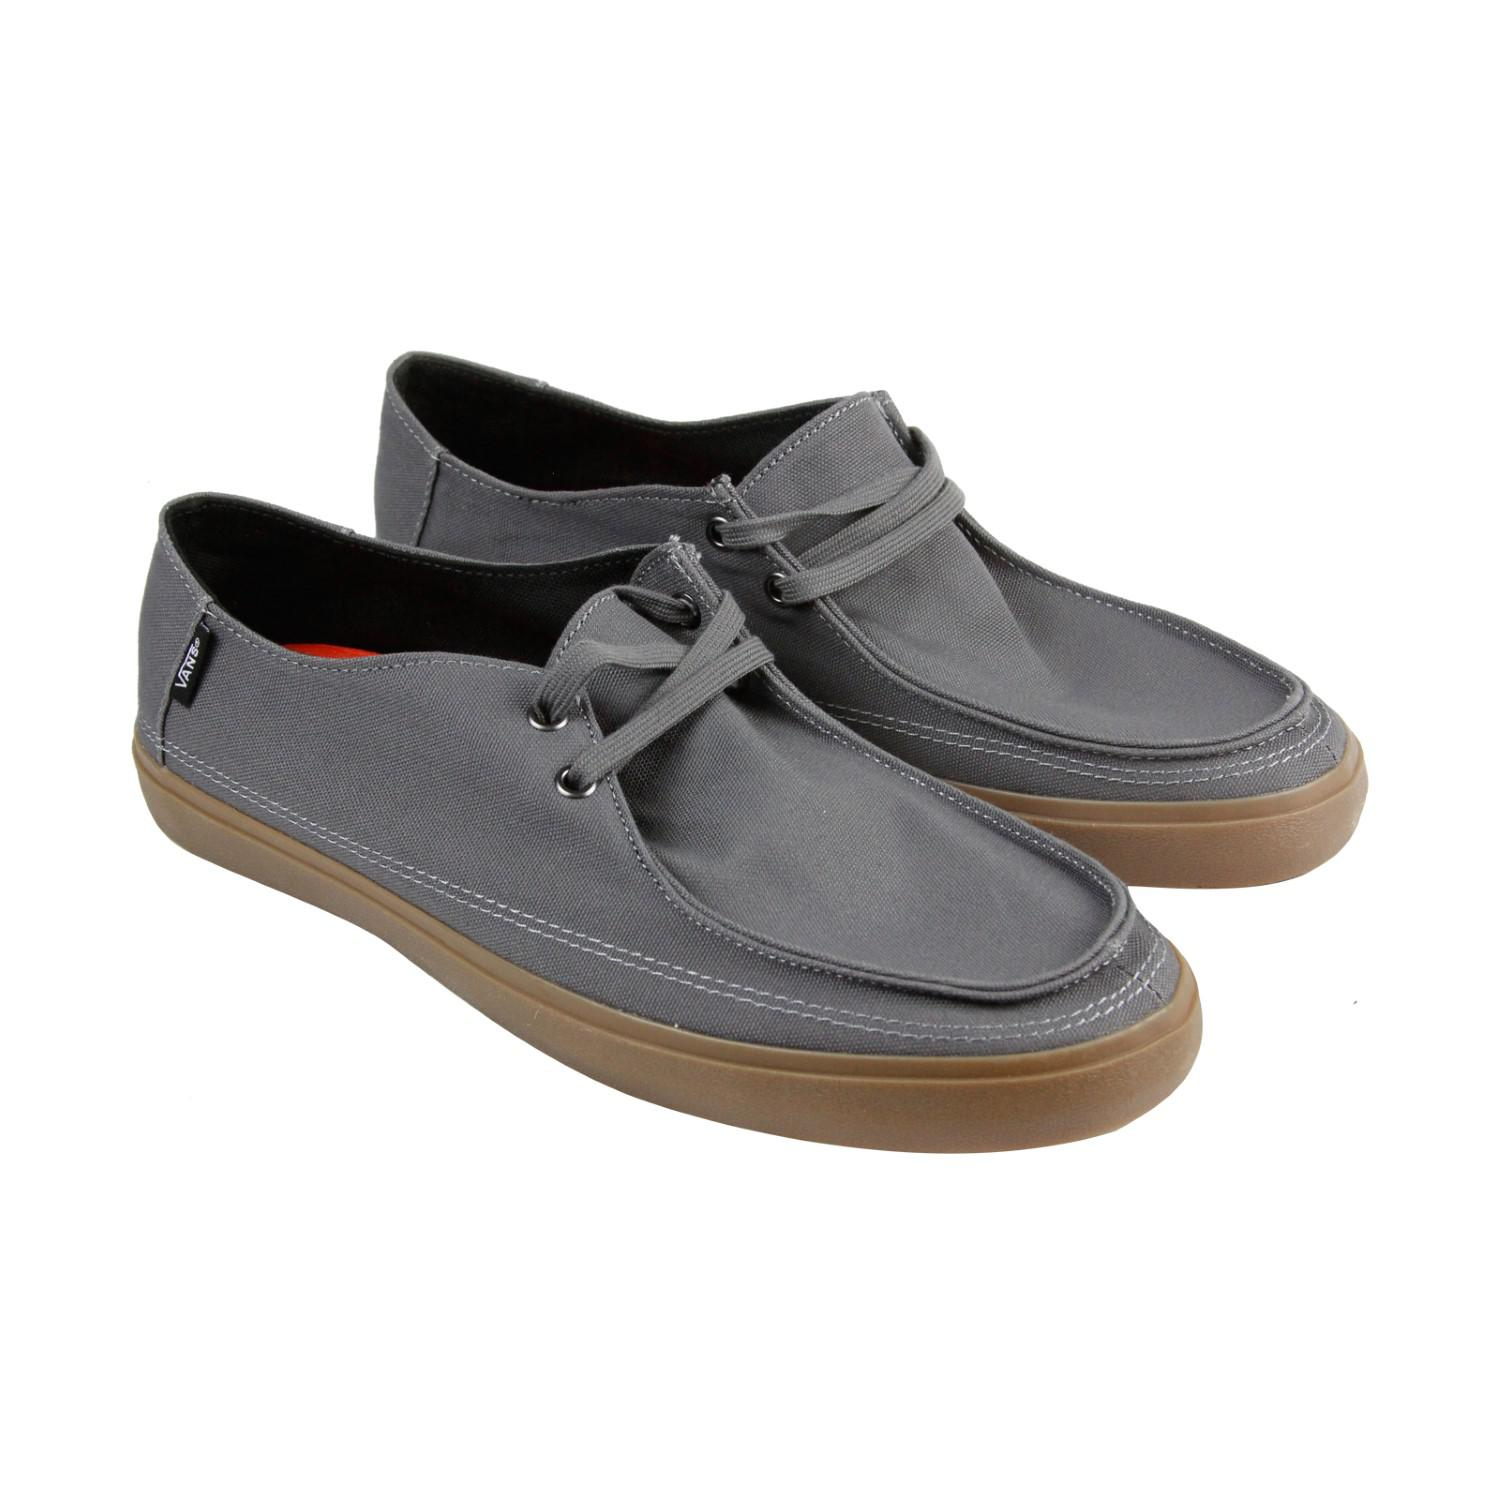 3512a98b2bc5 Lyst - Vans Rata Vulc Sf Pewter Gum Mens Casual Dress Boat Shoes in ...